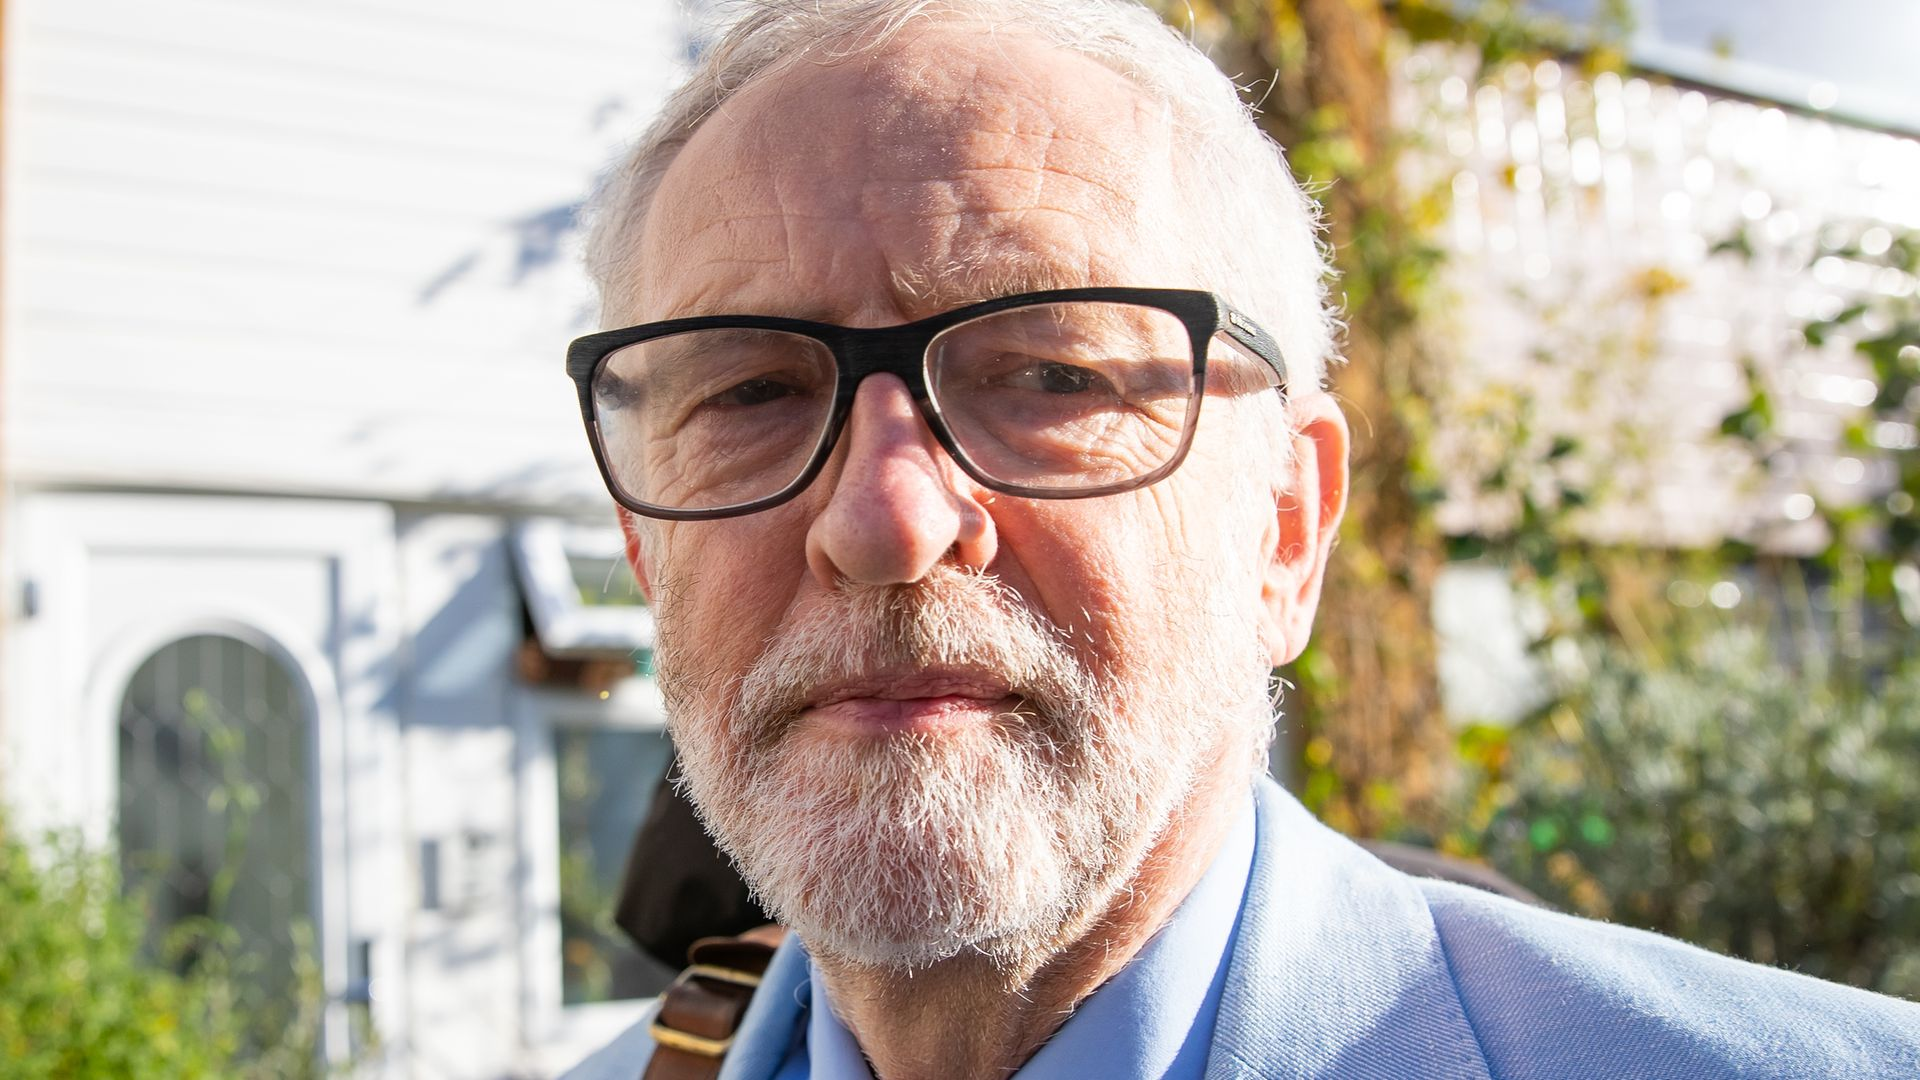 Former Labour leader Jeremy Corbyn (pictured above) has called on Boris Johnson to sack his health minister following his run-in with the law - Credit: PA